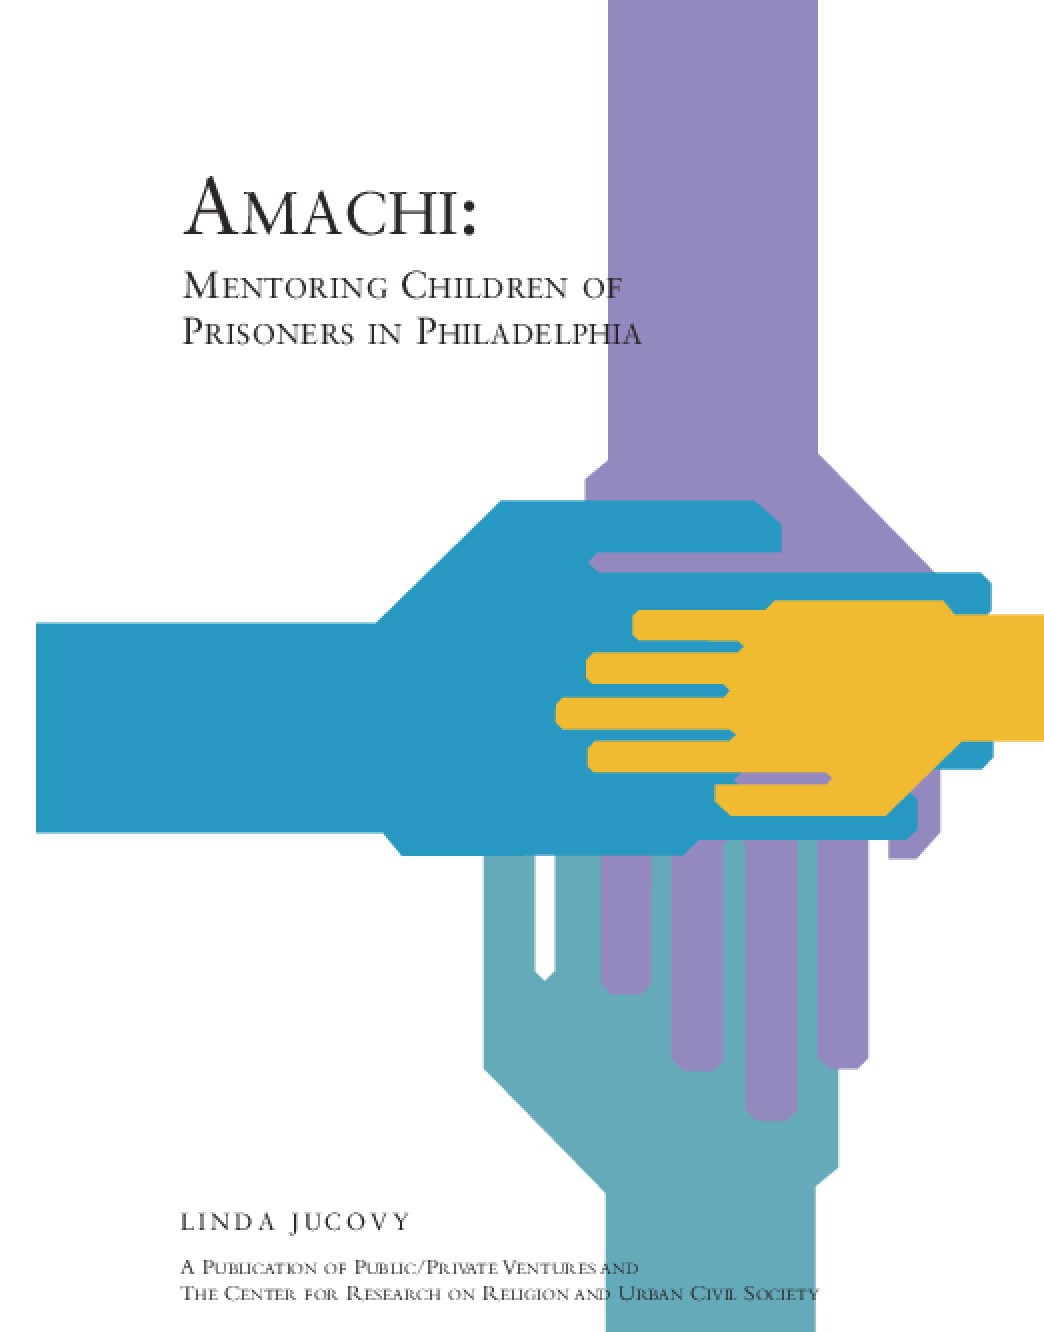 Amachi: Mentoring Children of Prisoners in Philadelphia